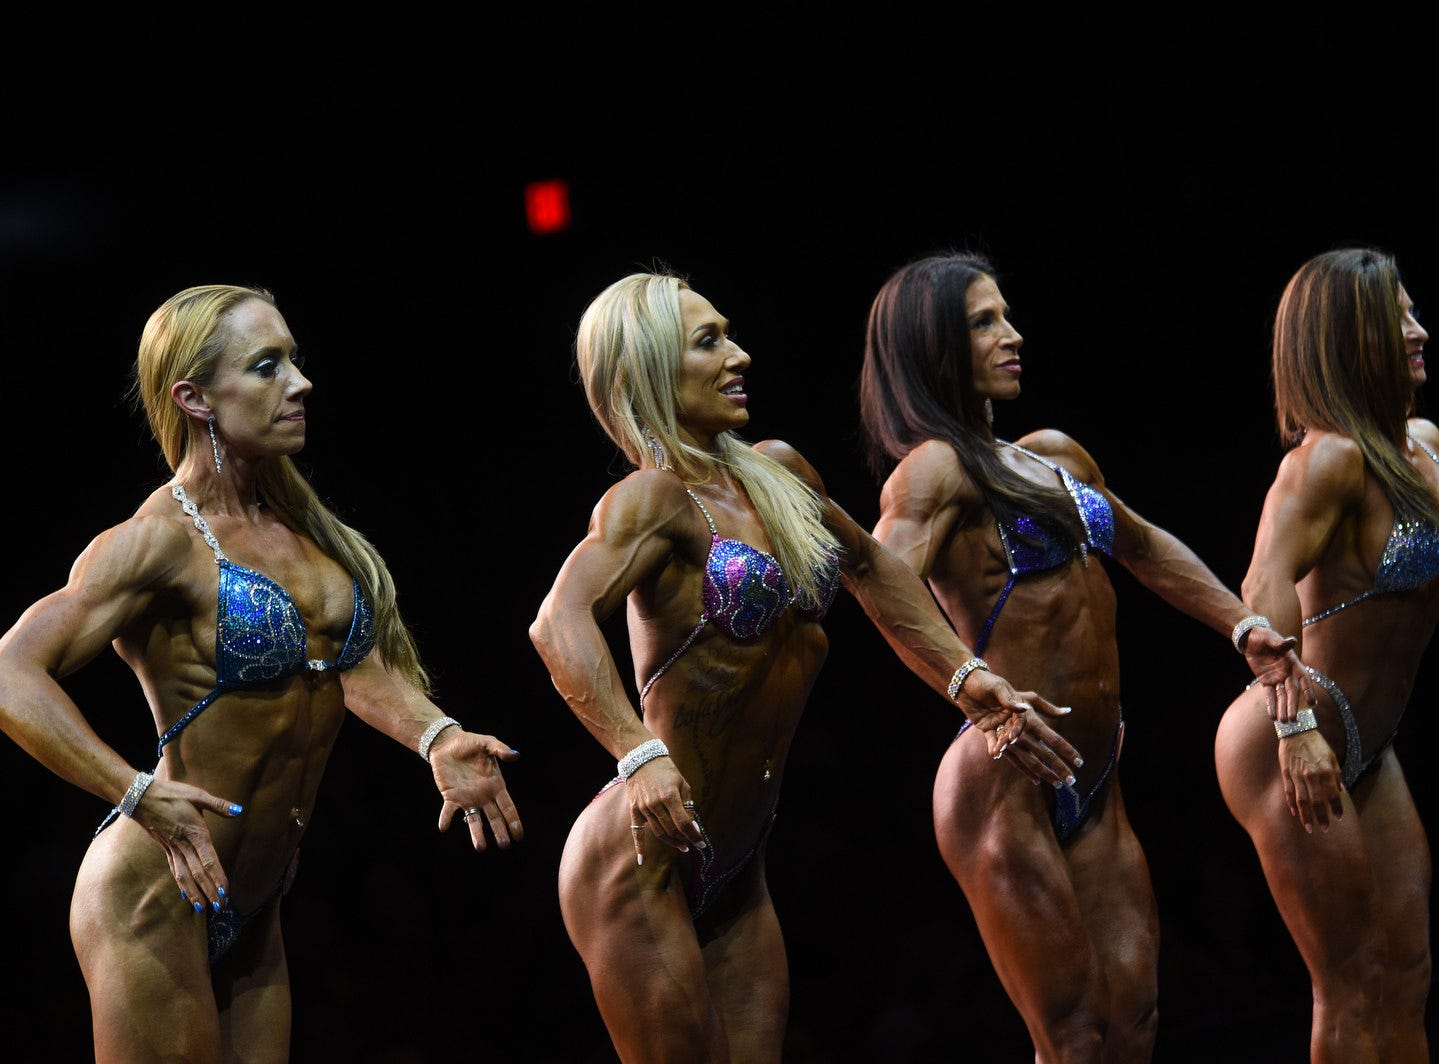 The NPC Mother Lode fitness and bodybuilding competition at the Grand Sierra Resort in Reno on April 13, 2019.